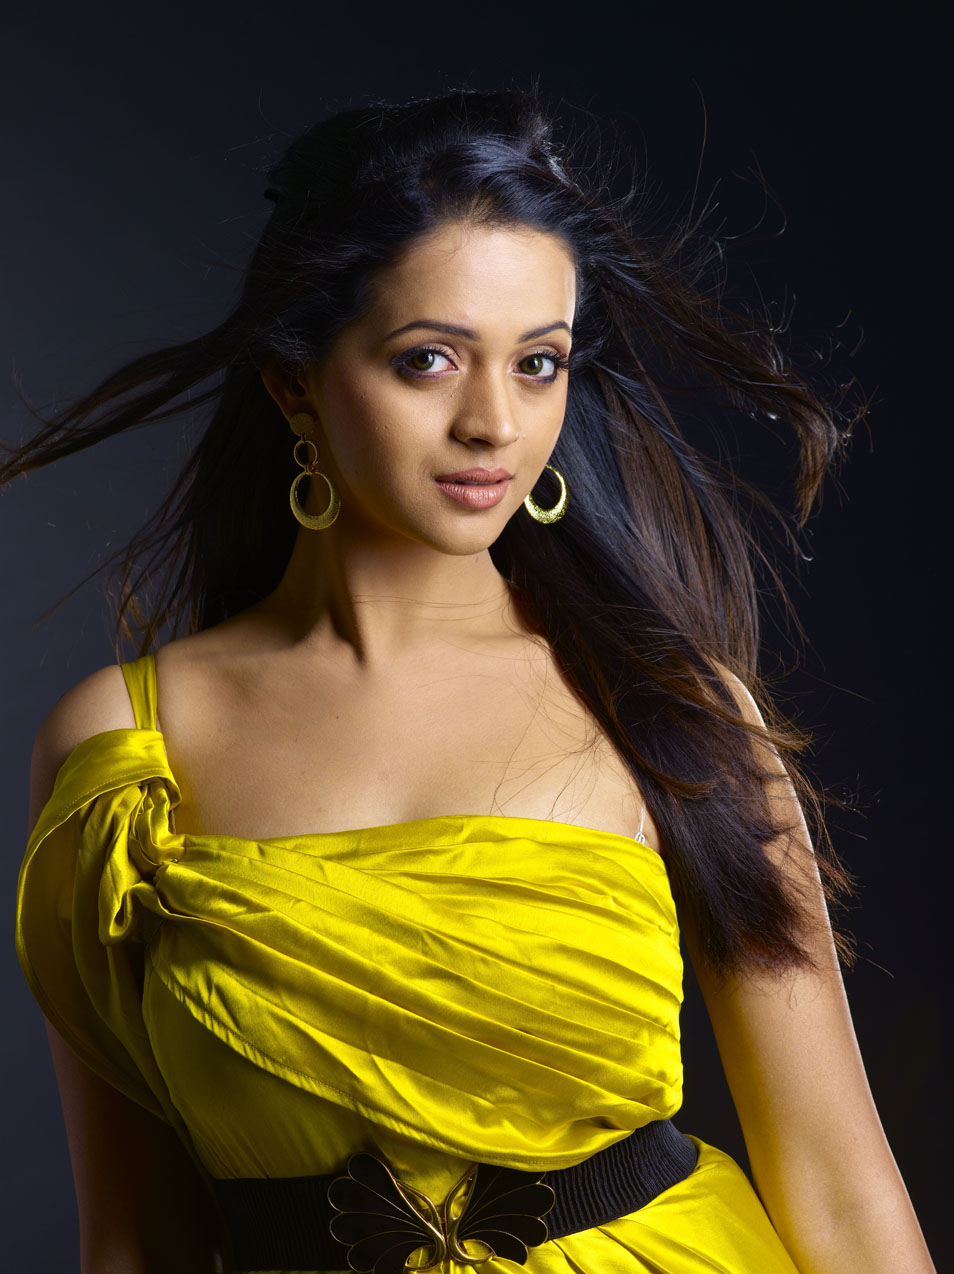 bhavana sex nude photos